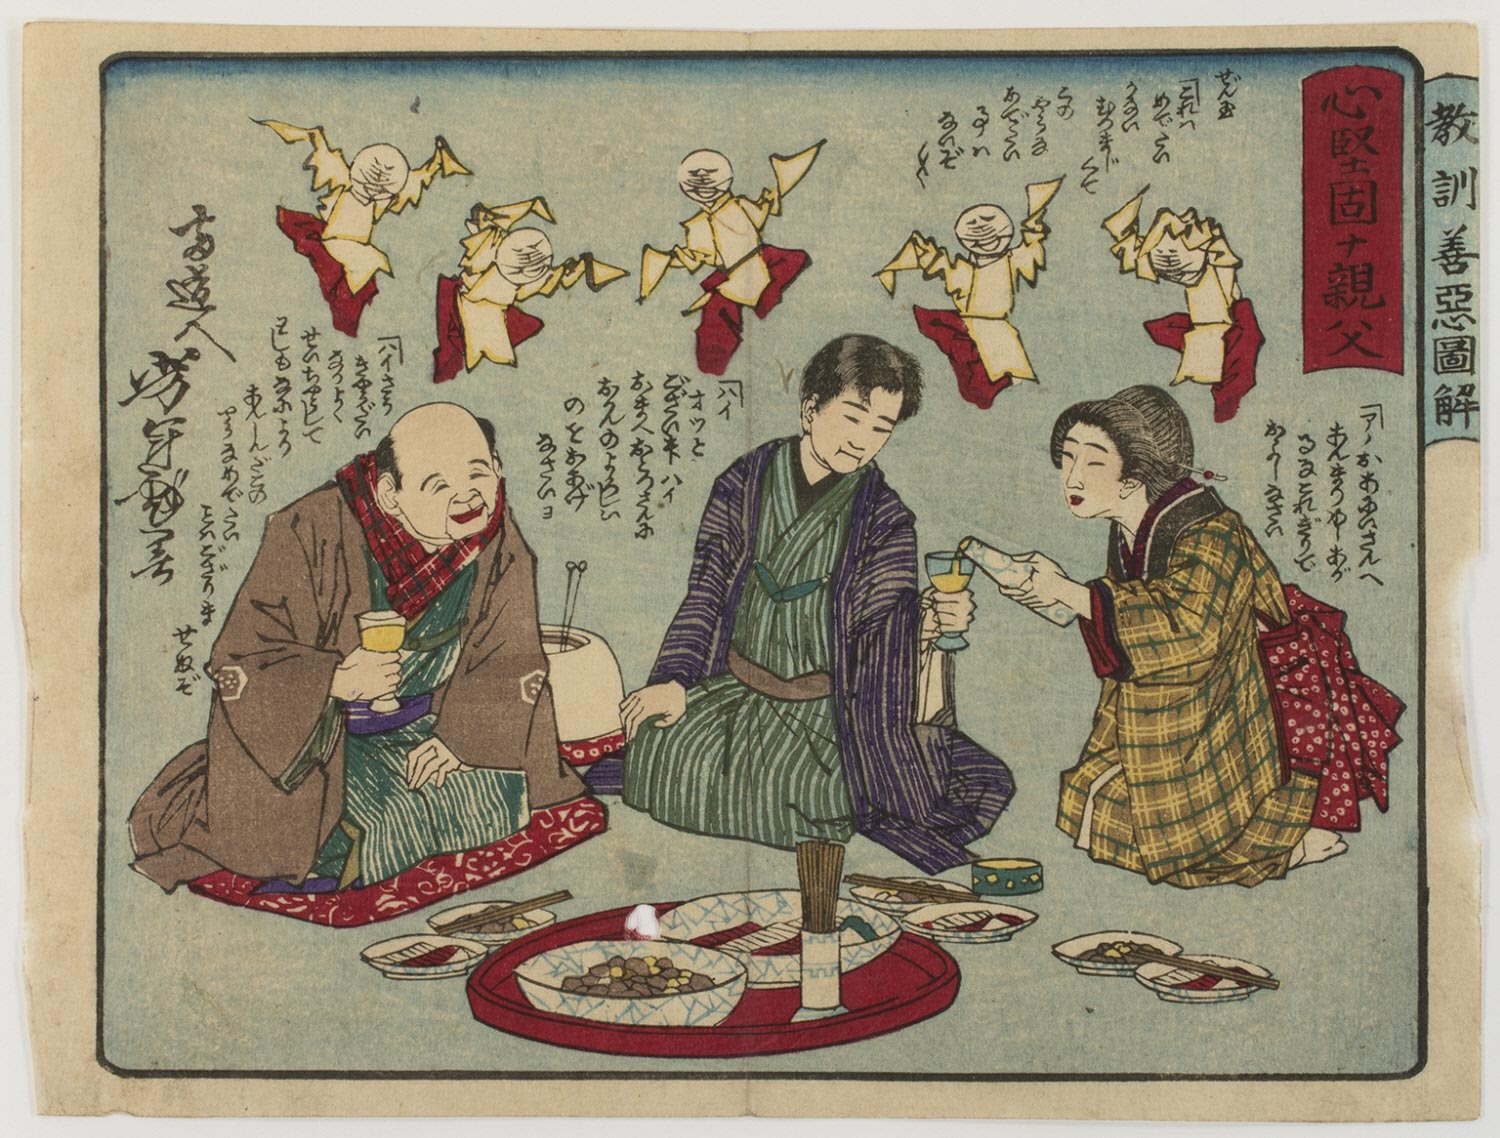 A Stable-Minded Father: Couple Eating with Father, from the series Moral Lessons through Pictures of Good and Evil (Kyōkun zenaku zukai)